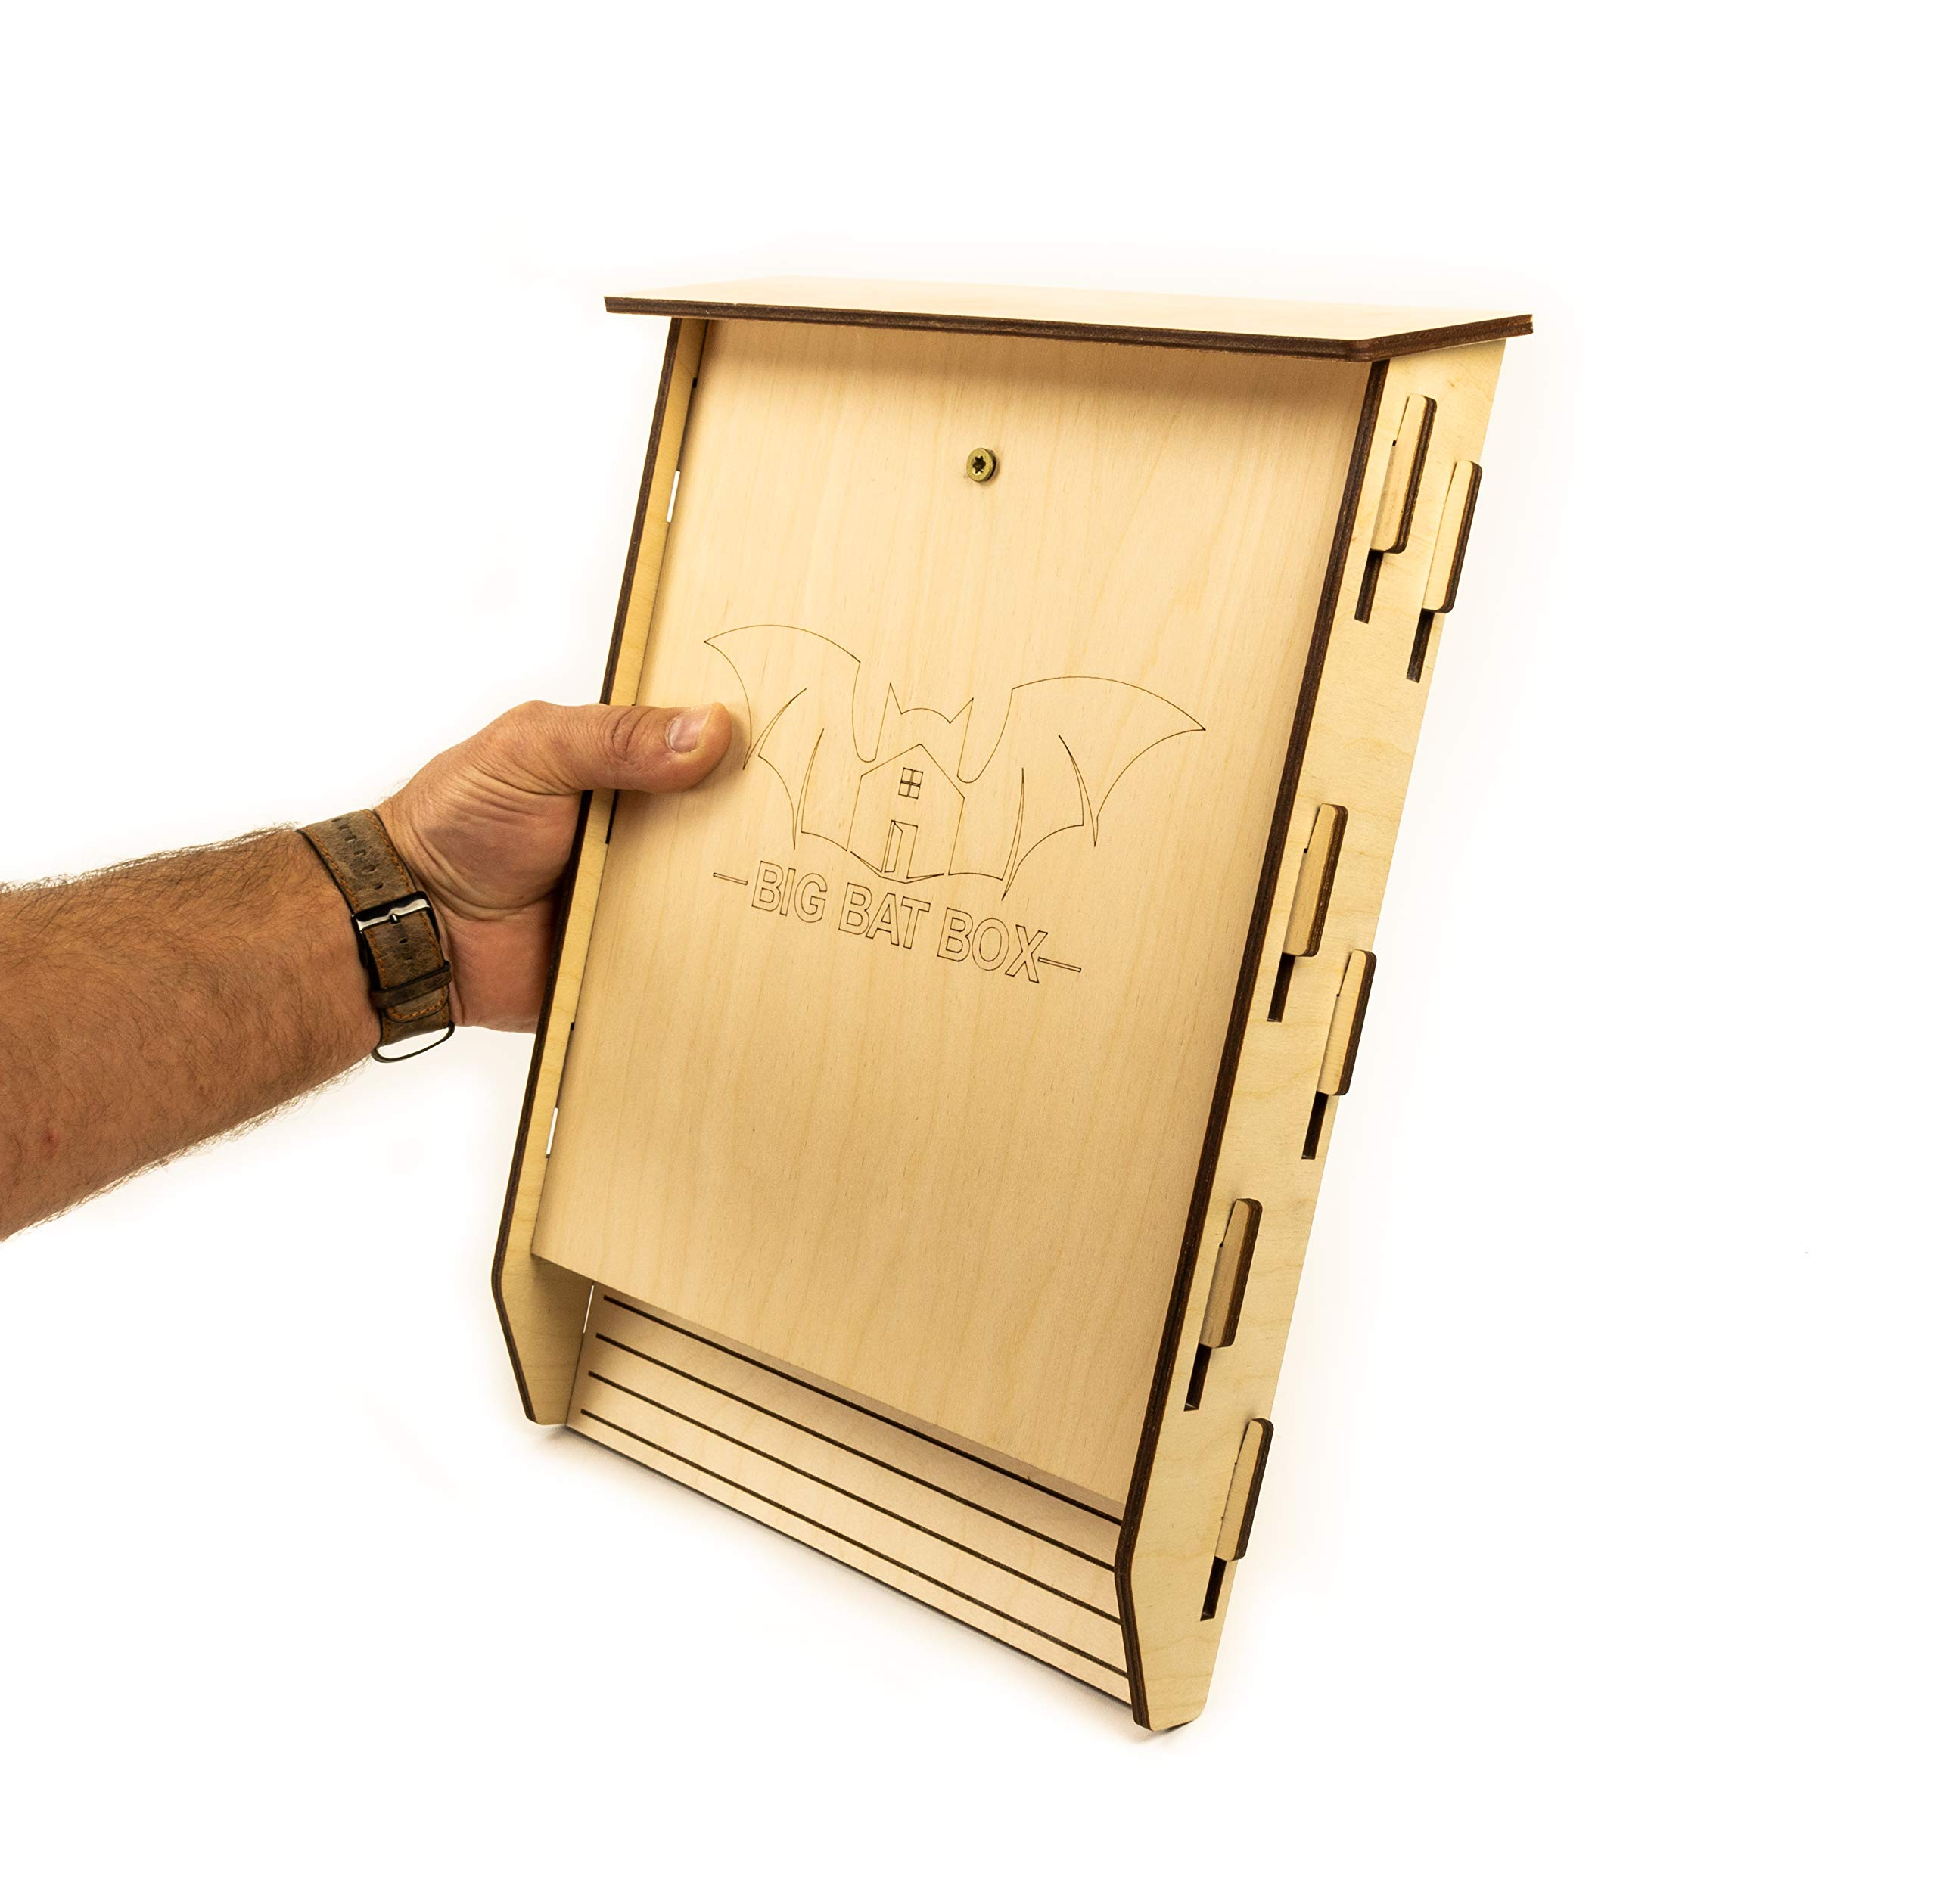 Bat House Kit 1-Chamber, Natural by Big Bat Box